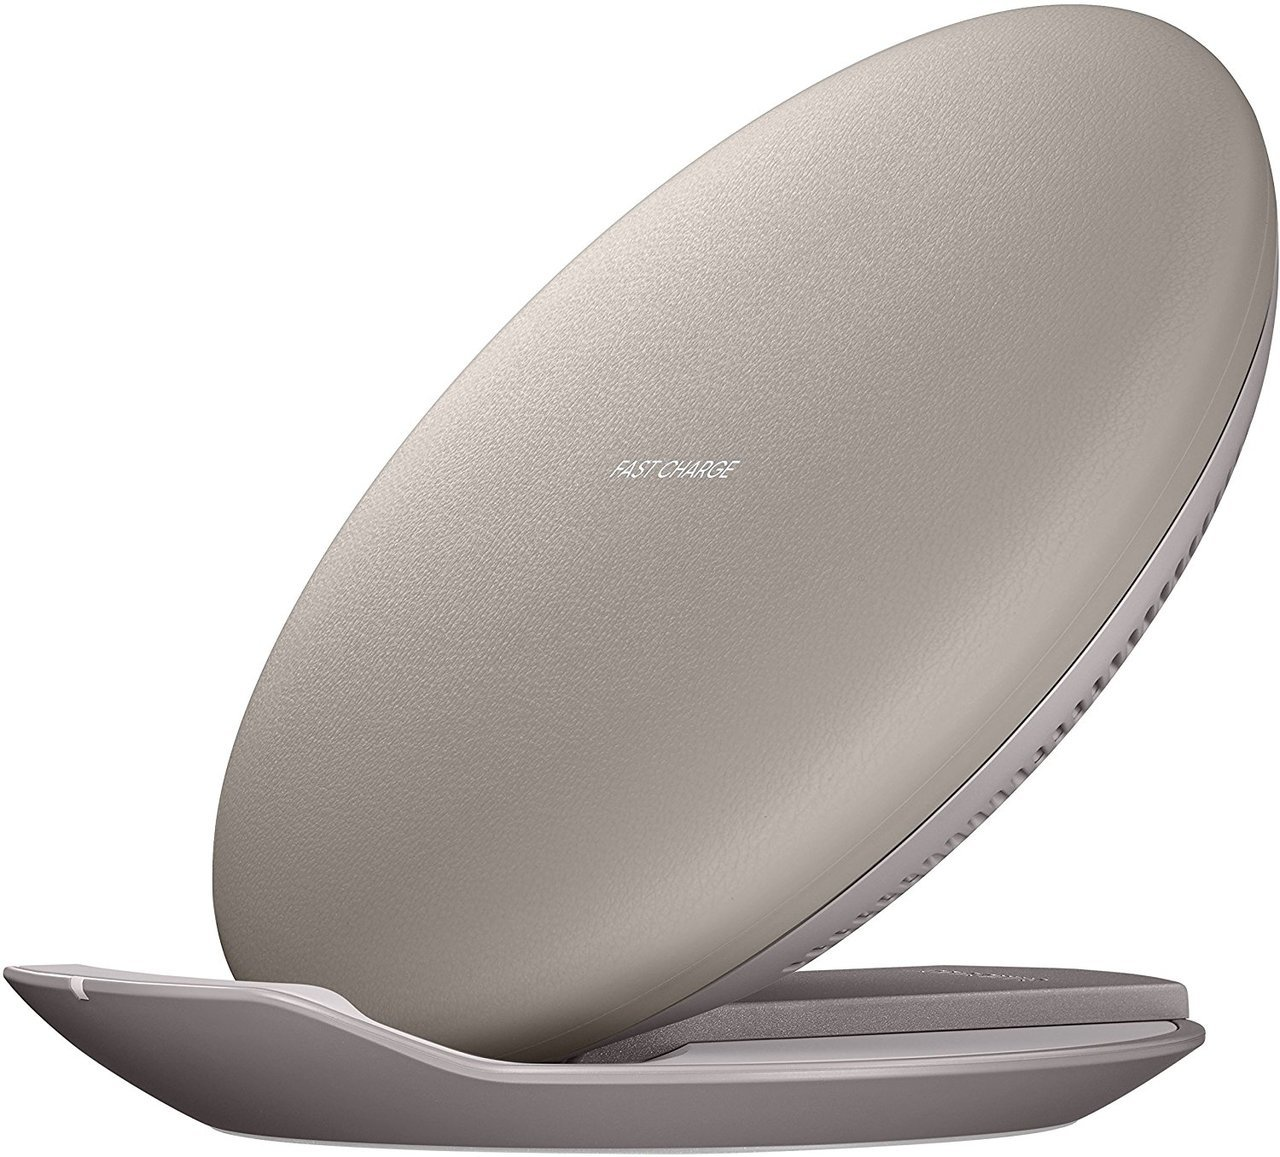 Samsung Fast Charge Wireless Charging Convertible, Tan